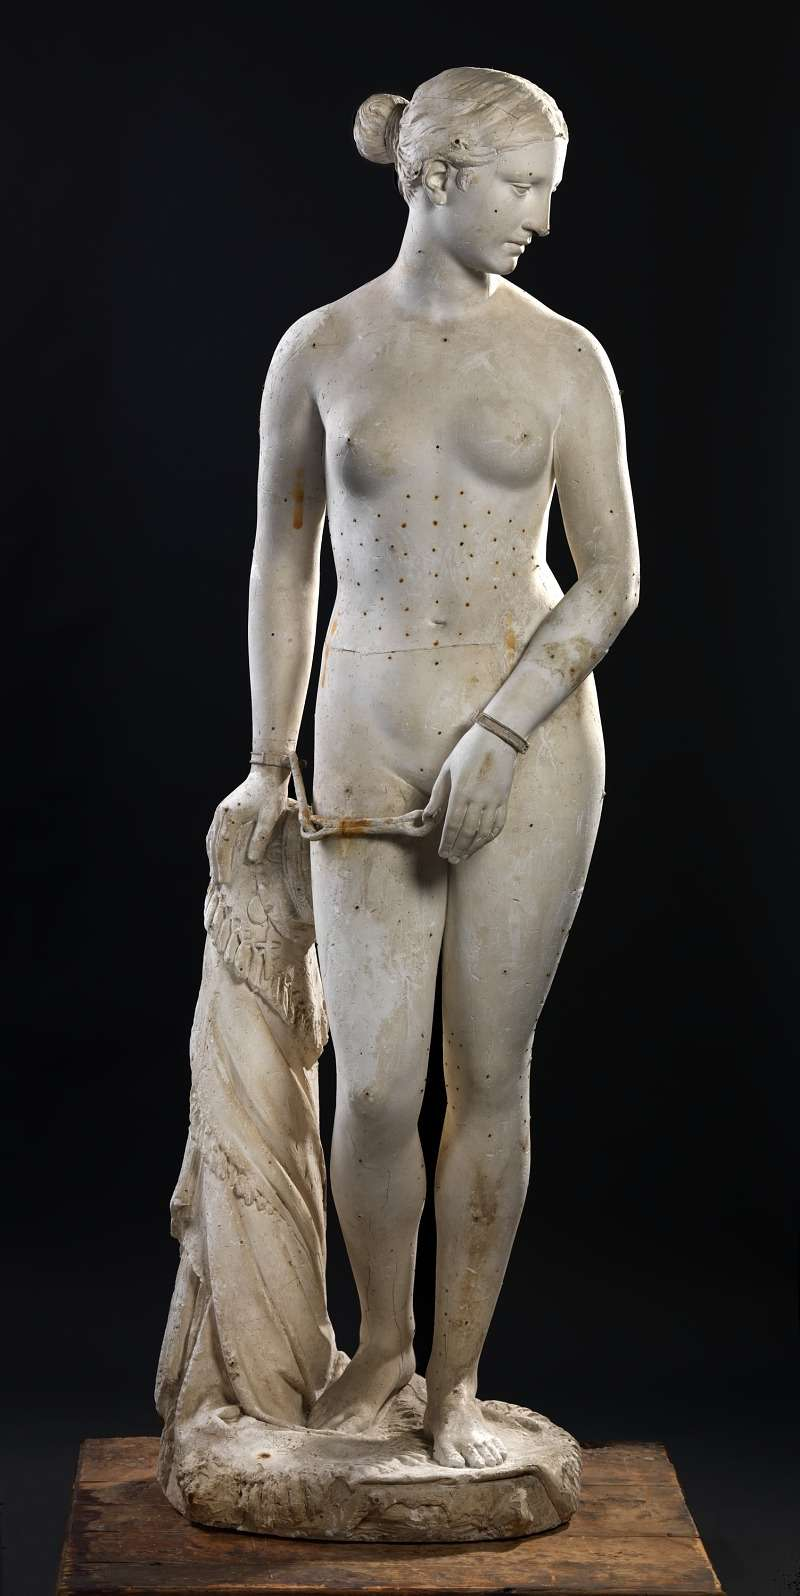 Ελληνίδα σκλάβα. Greek Slave. Smithsonian American Art Museum and its Renwick Gallery.